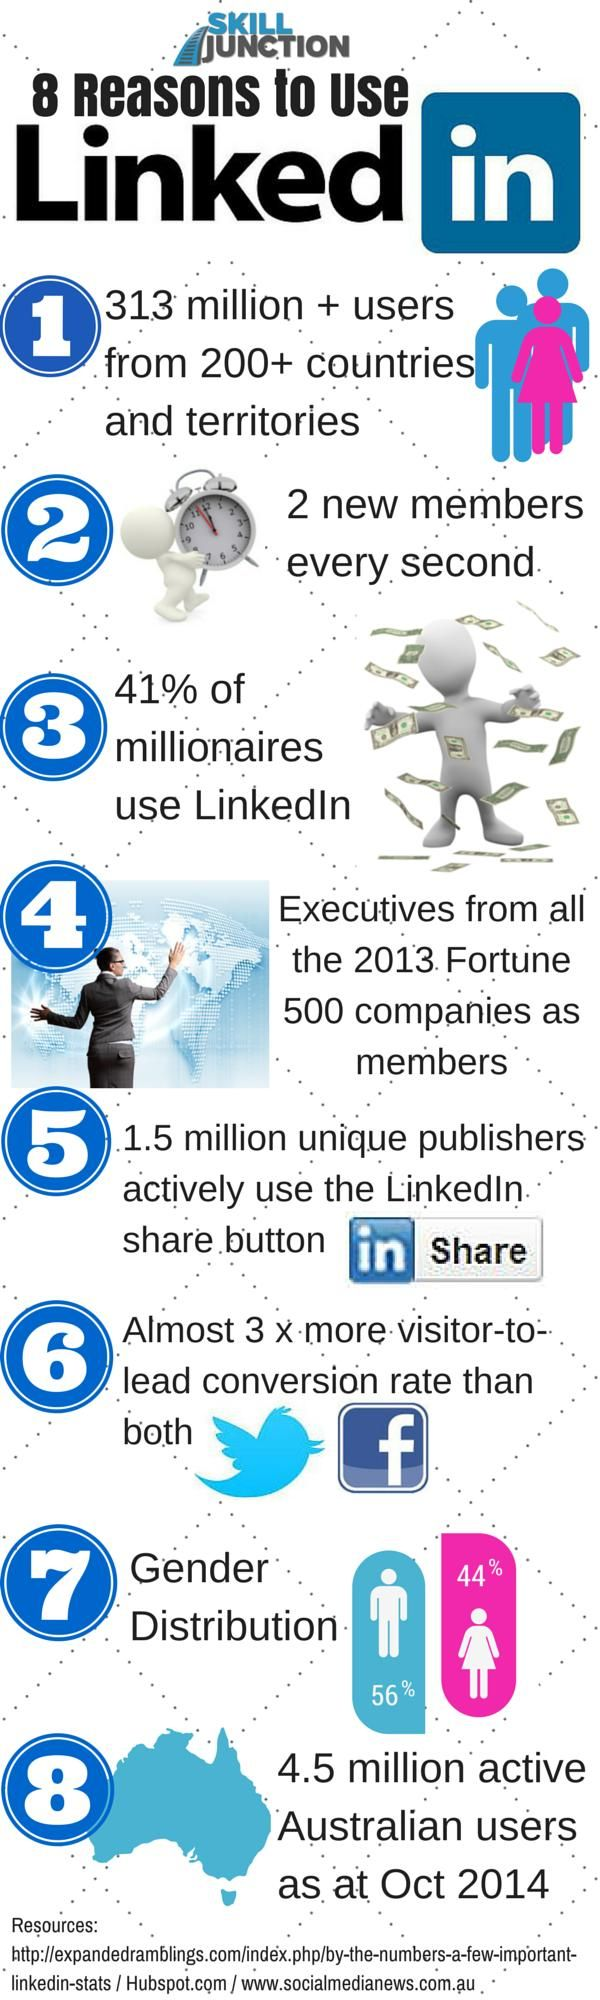 12 Compelling Reasons to Use LinkedIn for Business | LinkedIn - check out WHY you should be using LinkedIn in this in-depth article by clicking here:  http://skilljunction.com.au/use-linkedin